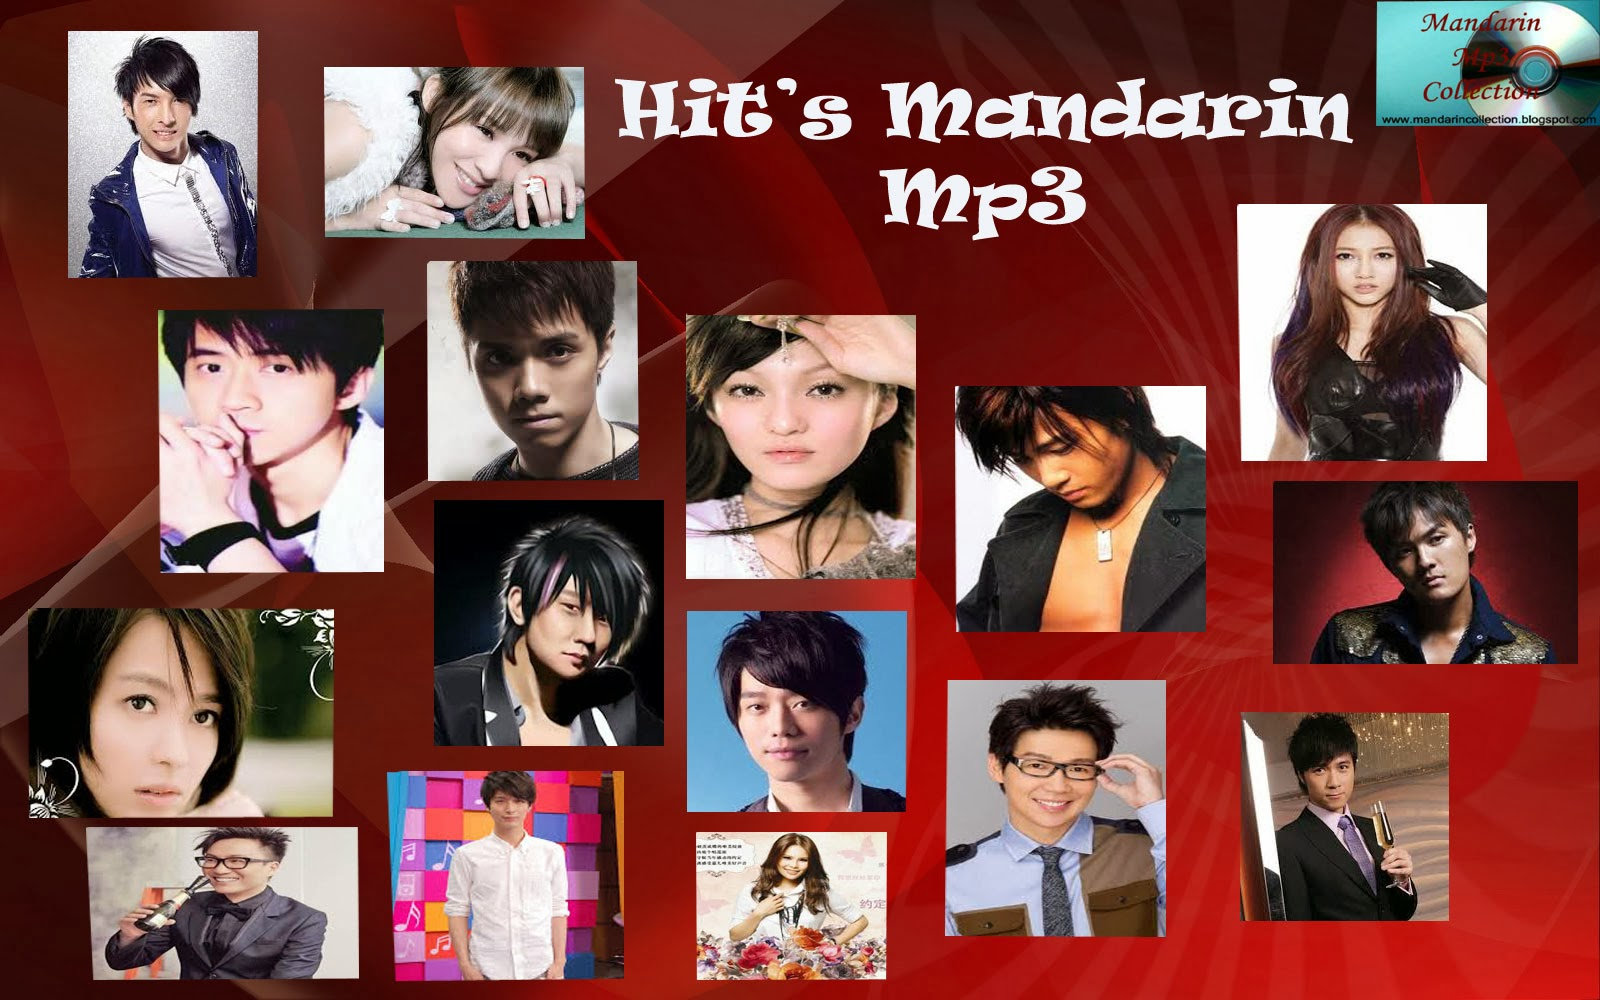 Mandarin Mp3 Collection April 2014